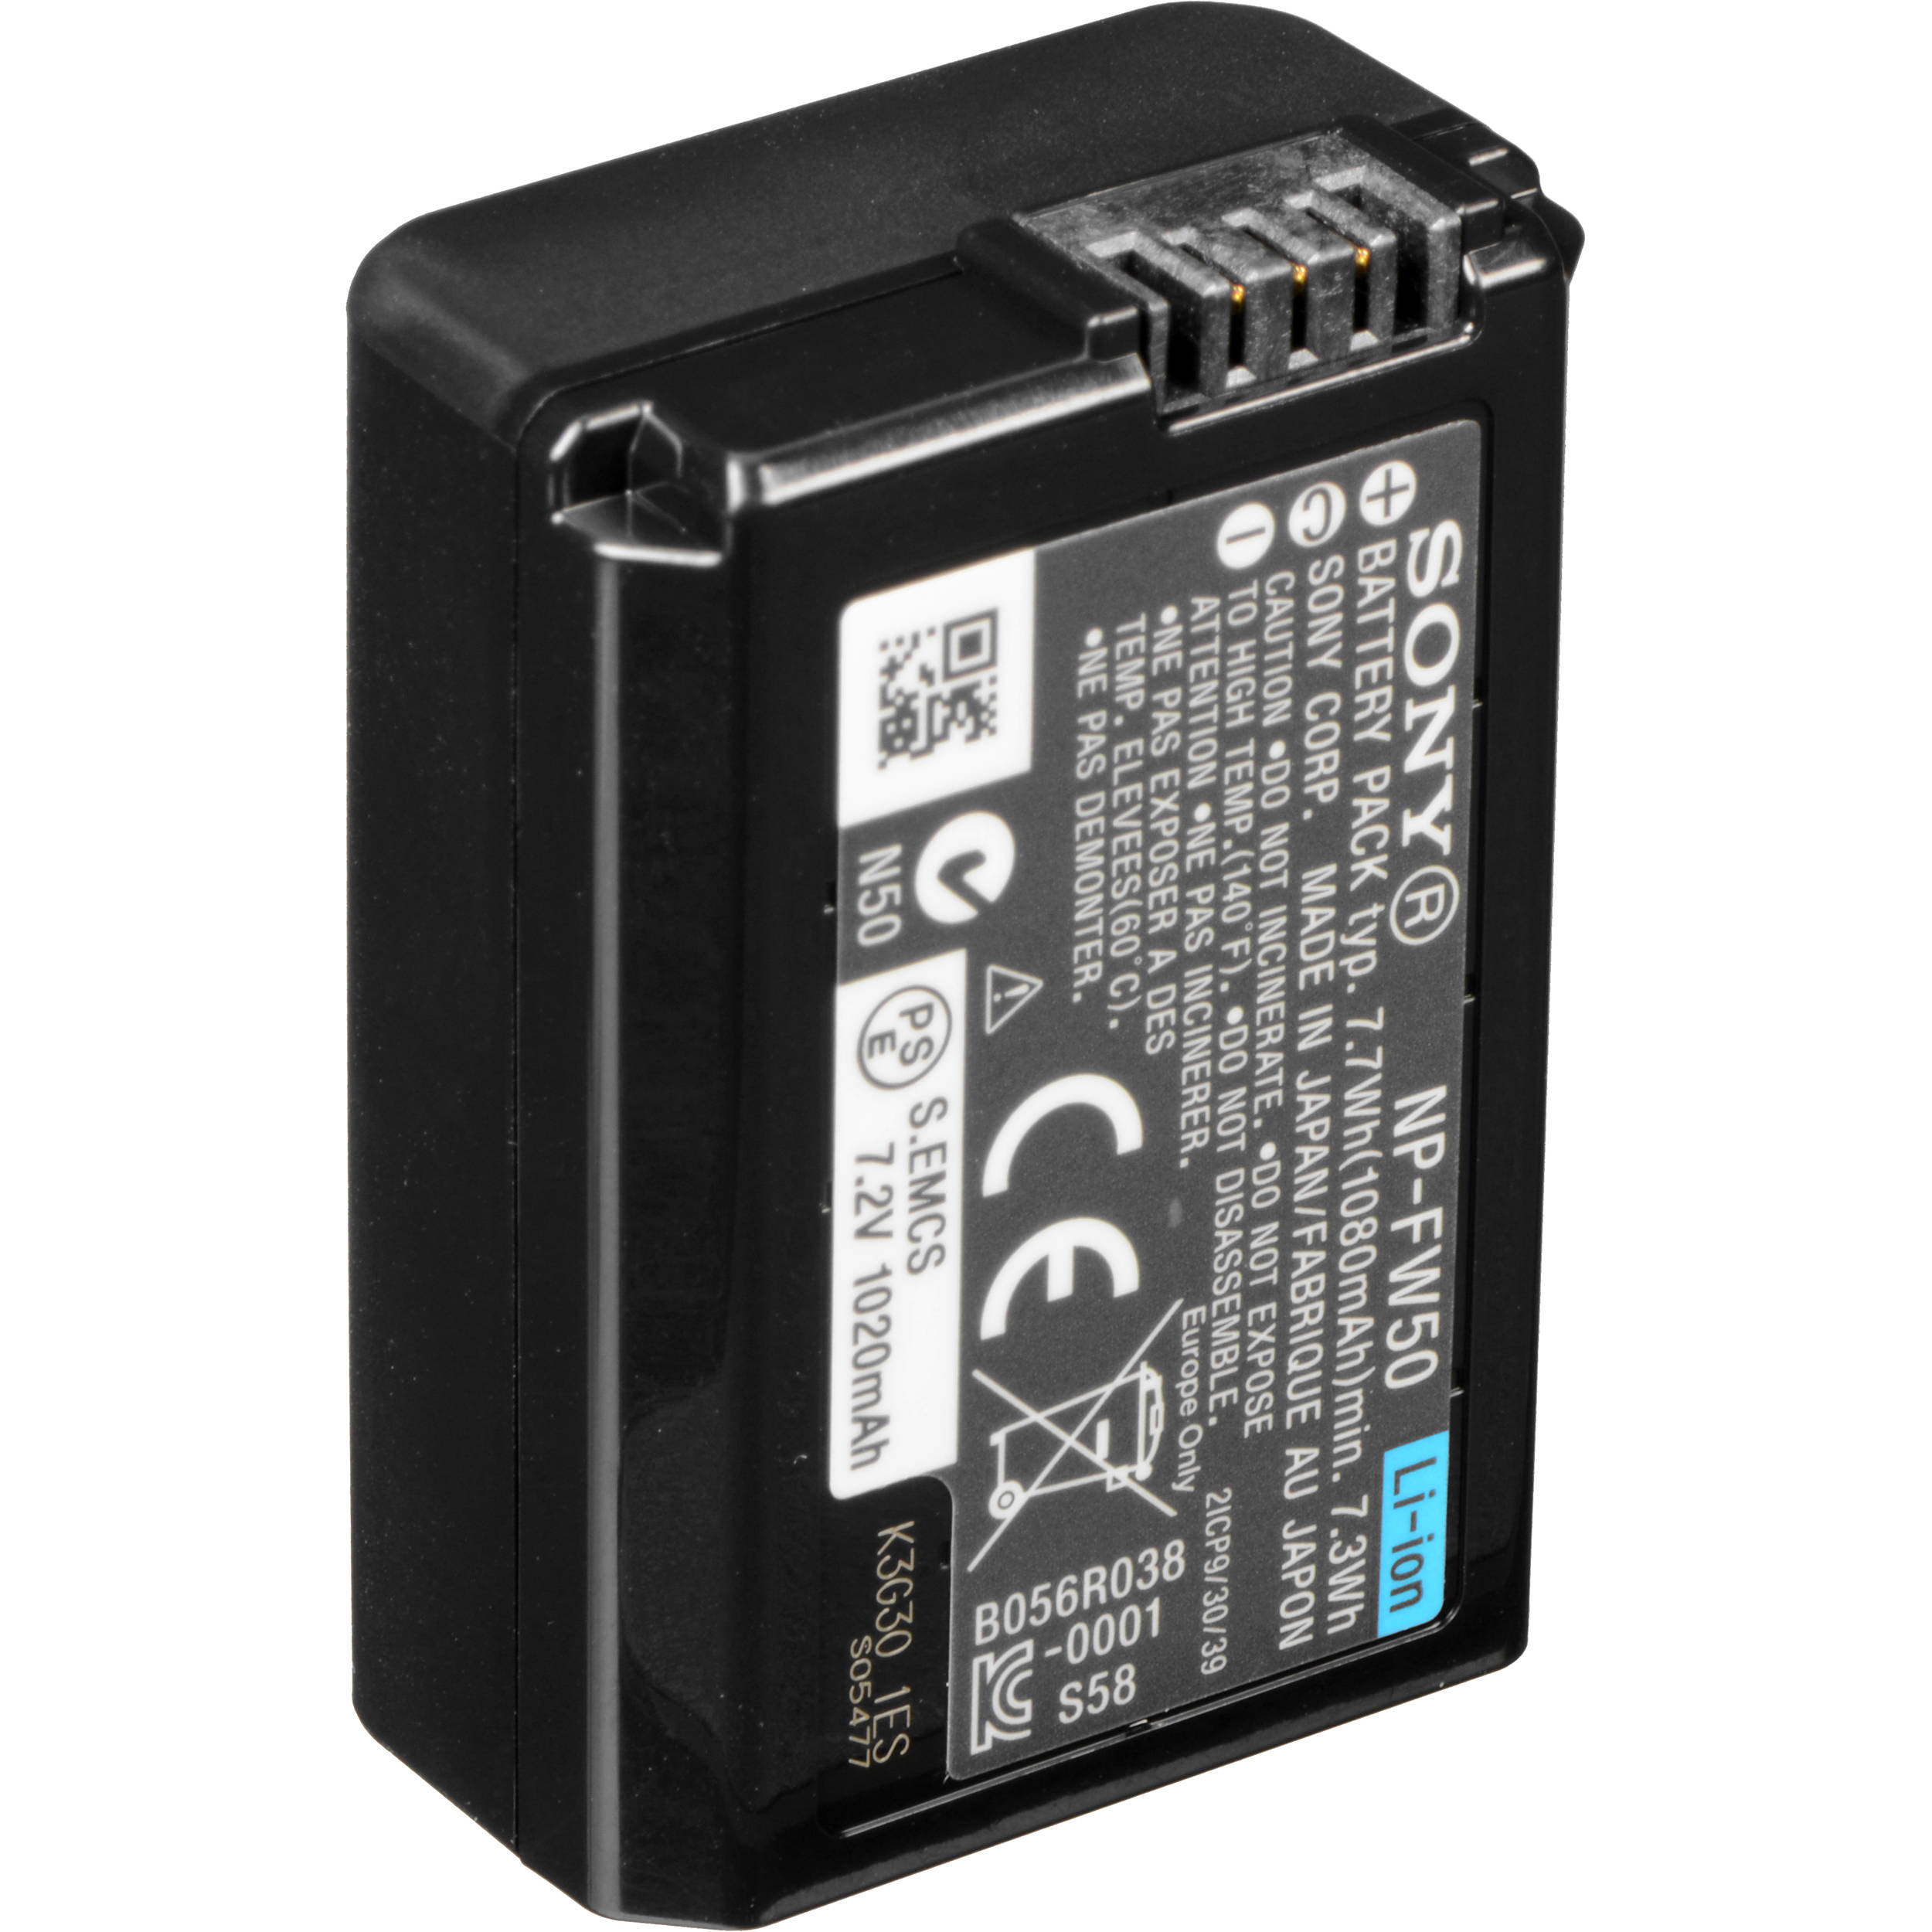 Sony A7 Series NP-FW50 Battery